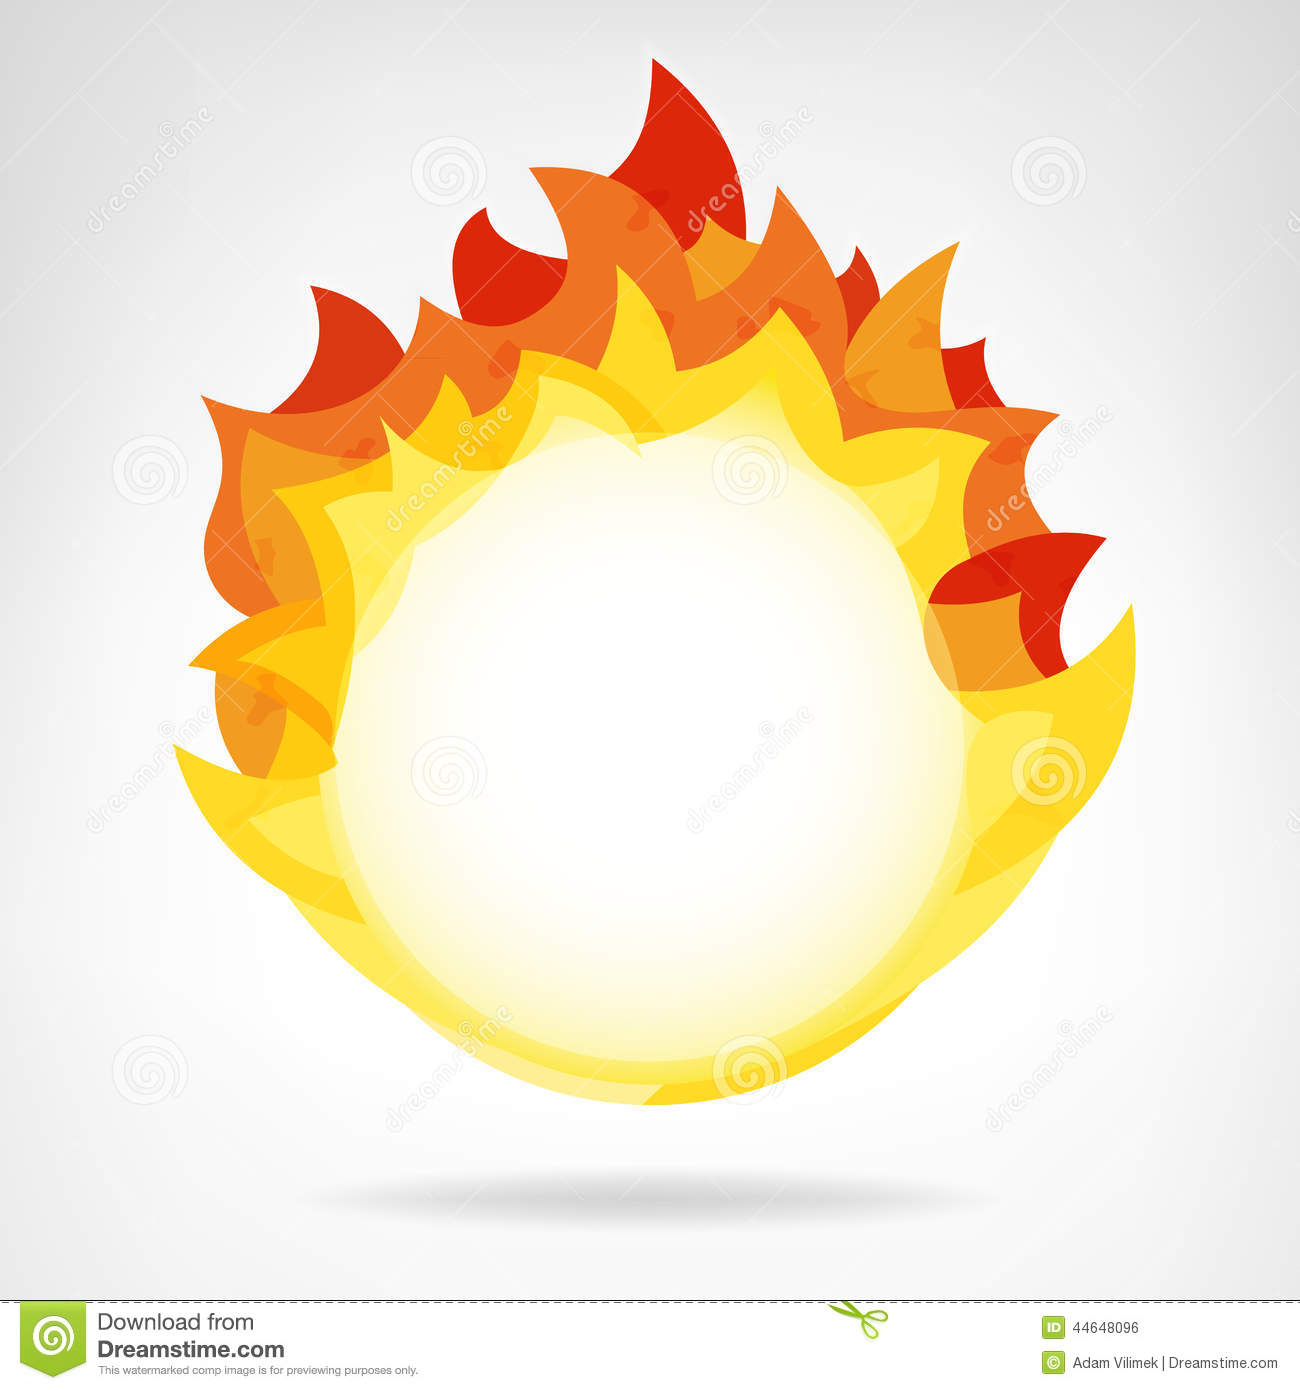 Download Fire Flame Circle Backdrop Isolated Vector Stock Illustration    Illustration Of Element, Ignite: